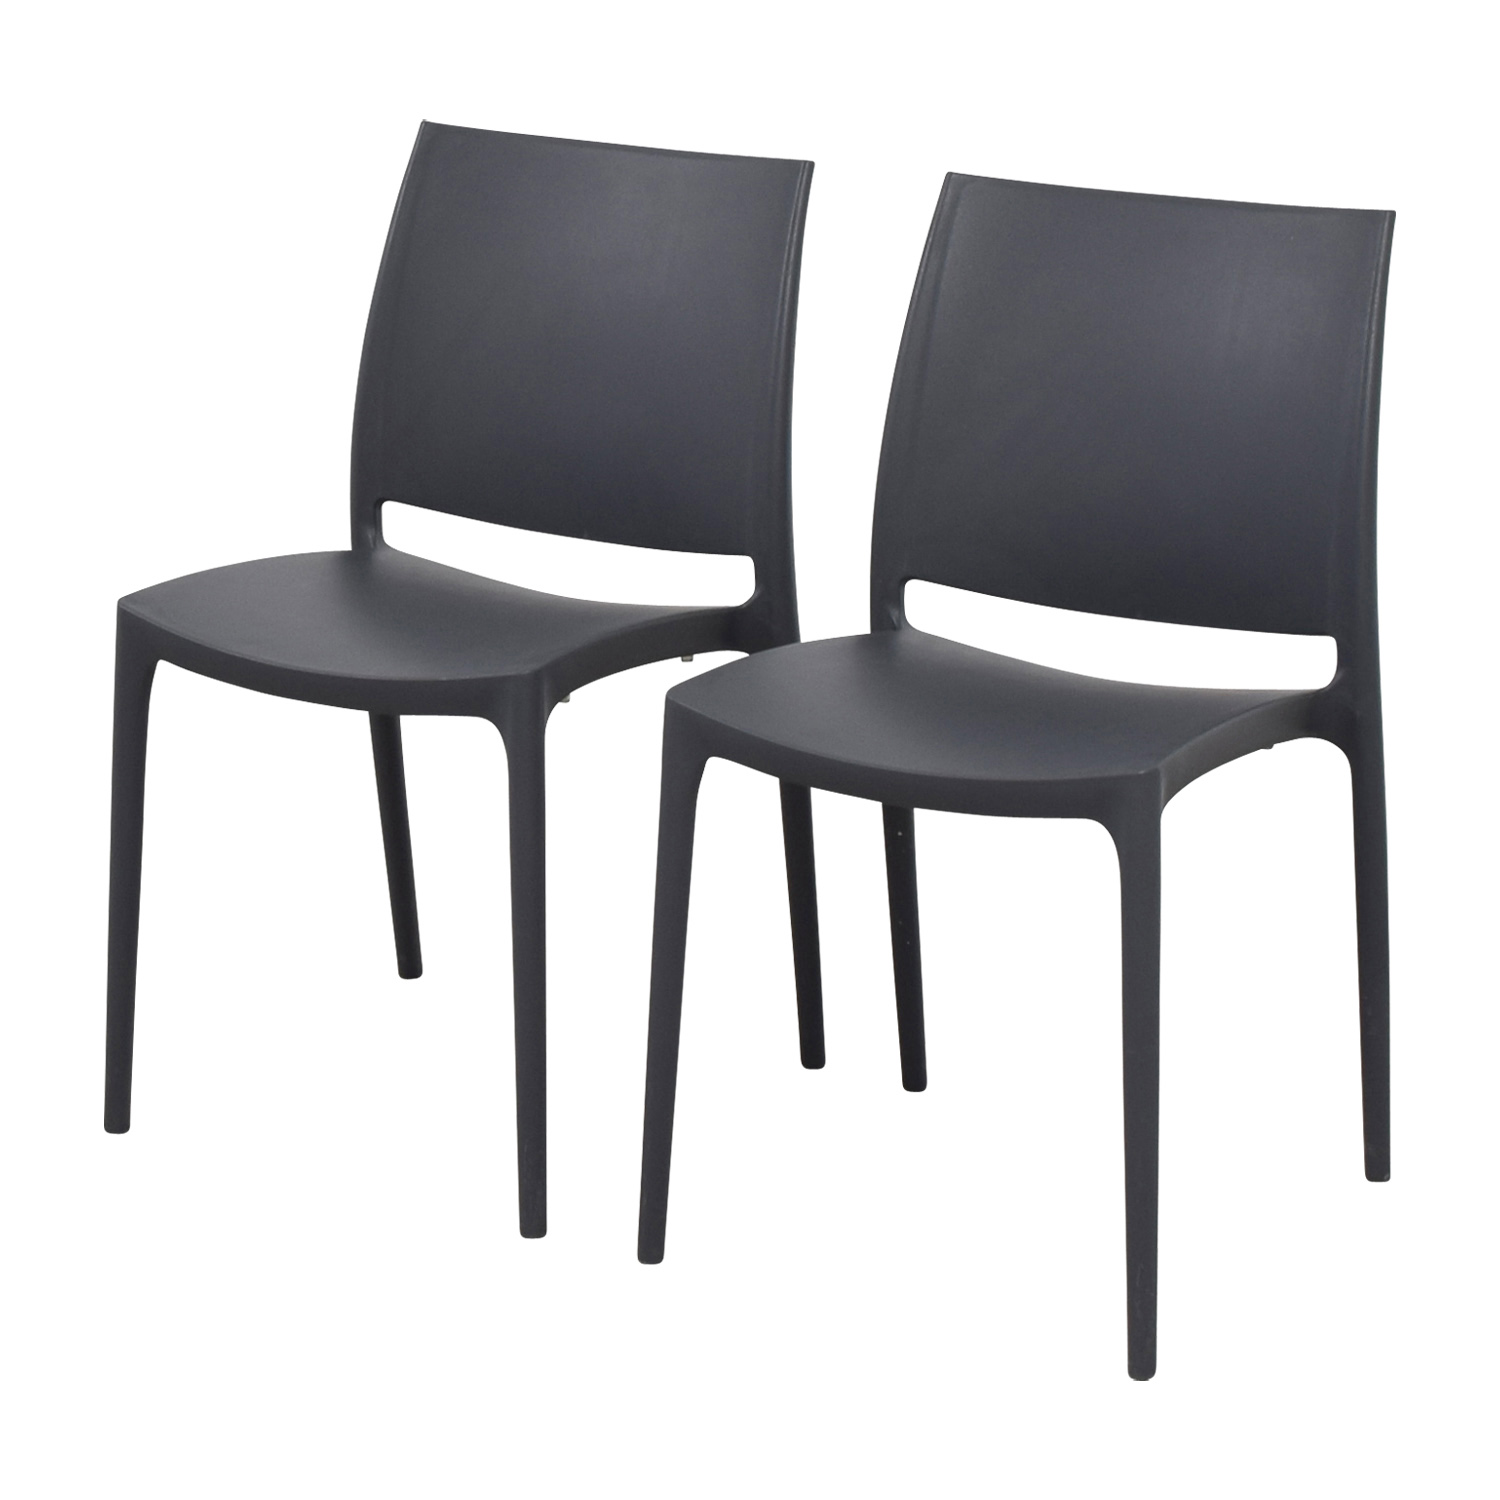 plastic molded chairs oversized folding quad chair 87 off grey